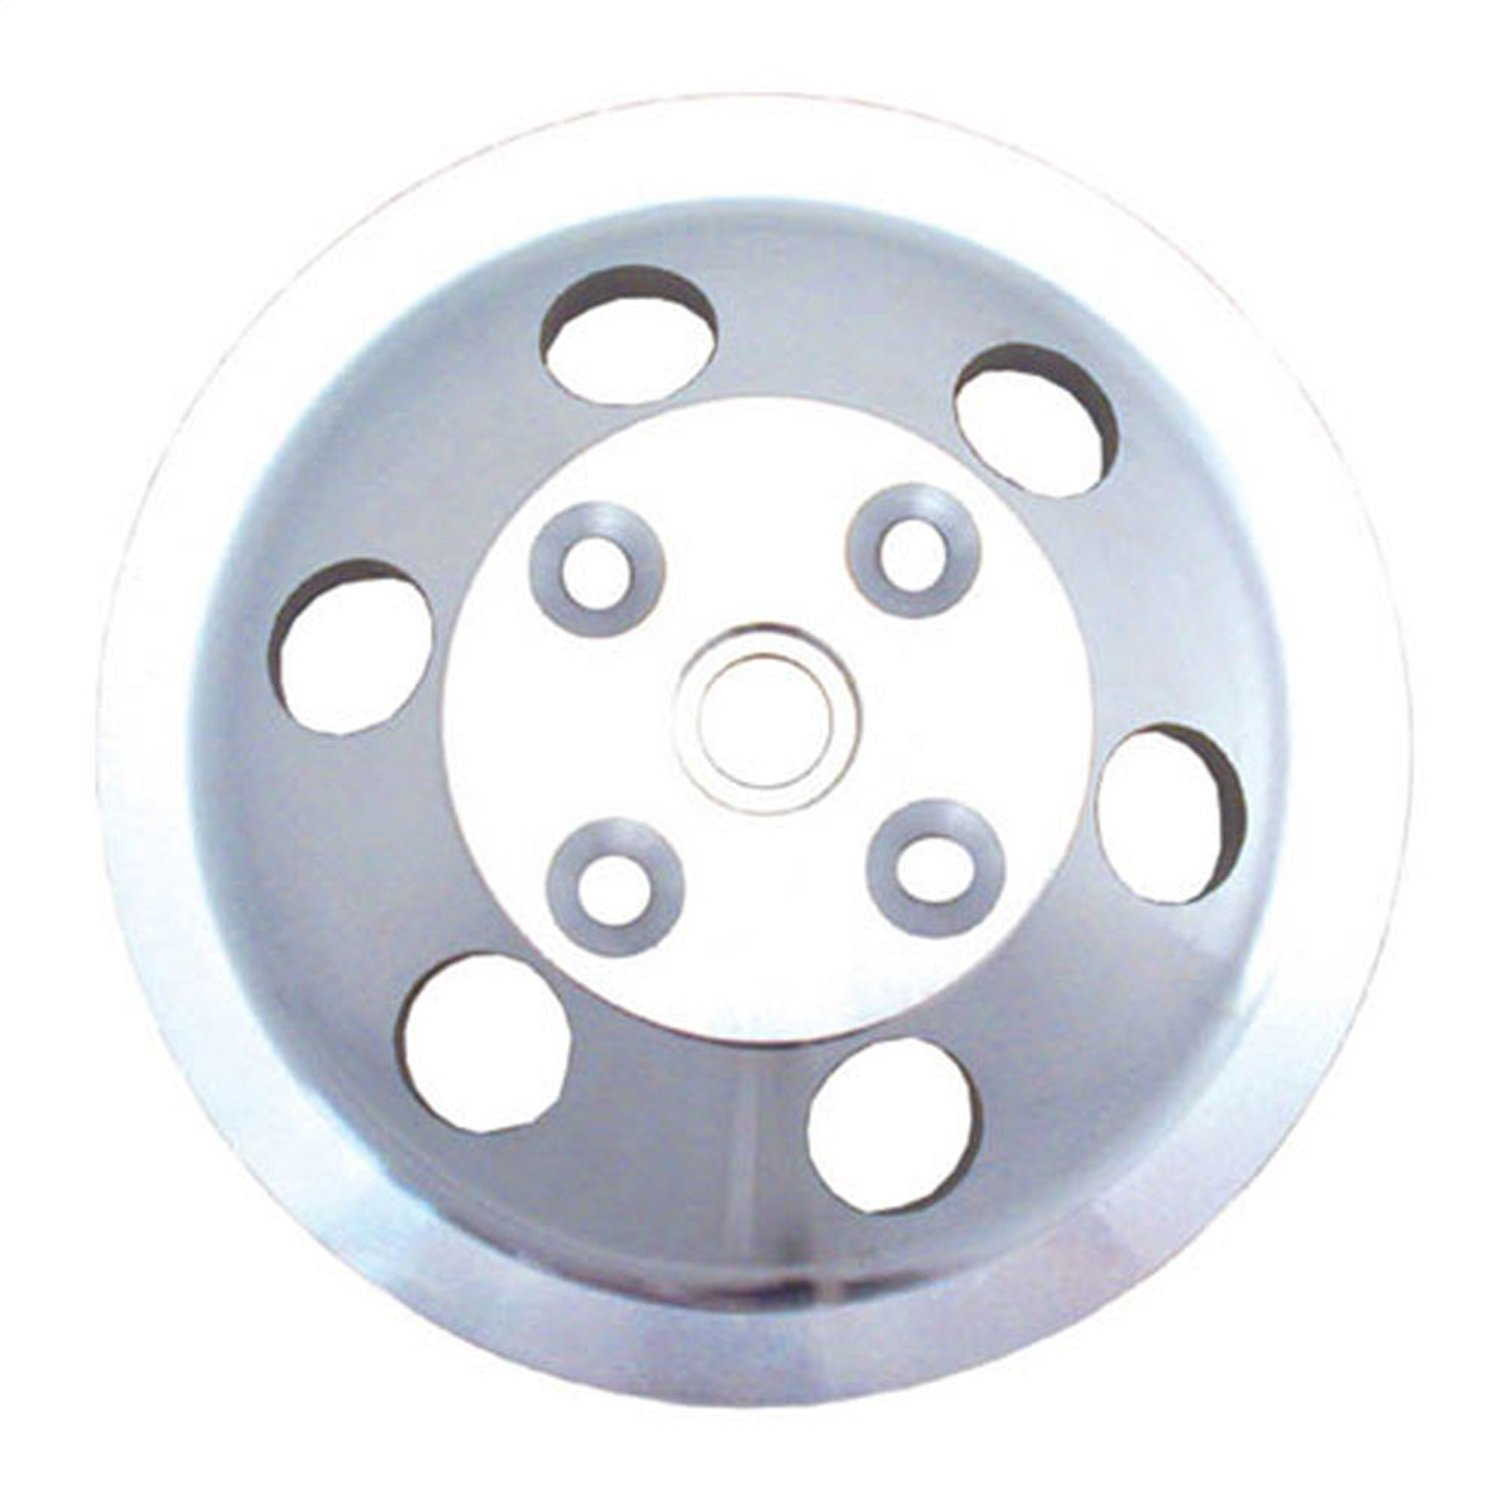 Spectre Performance 4419 Aluminum Water Pump Pulley